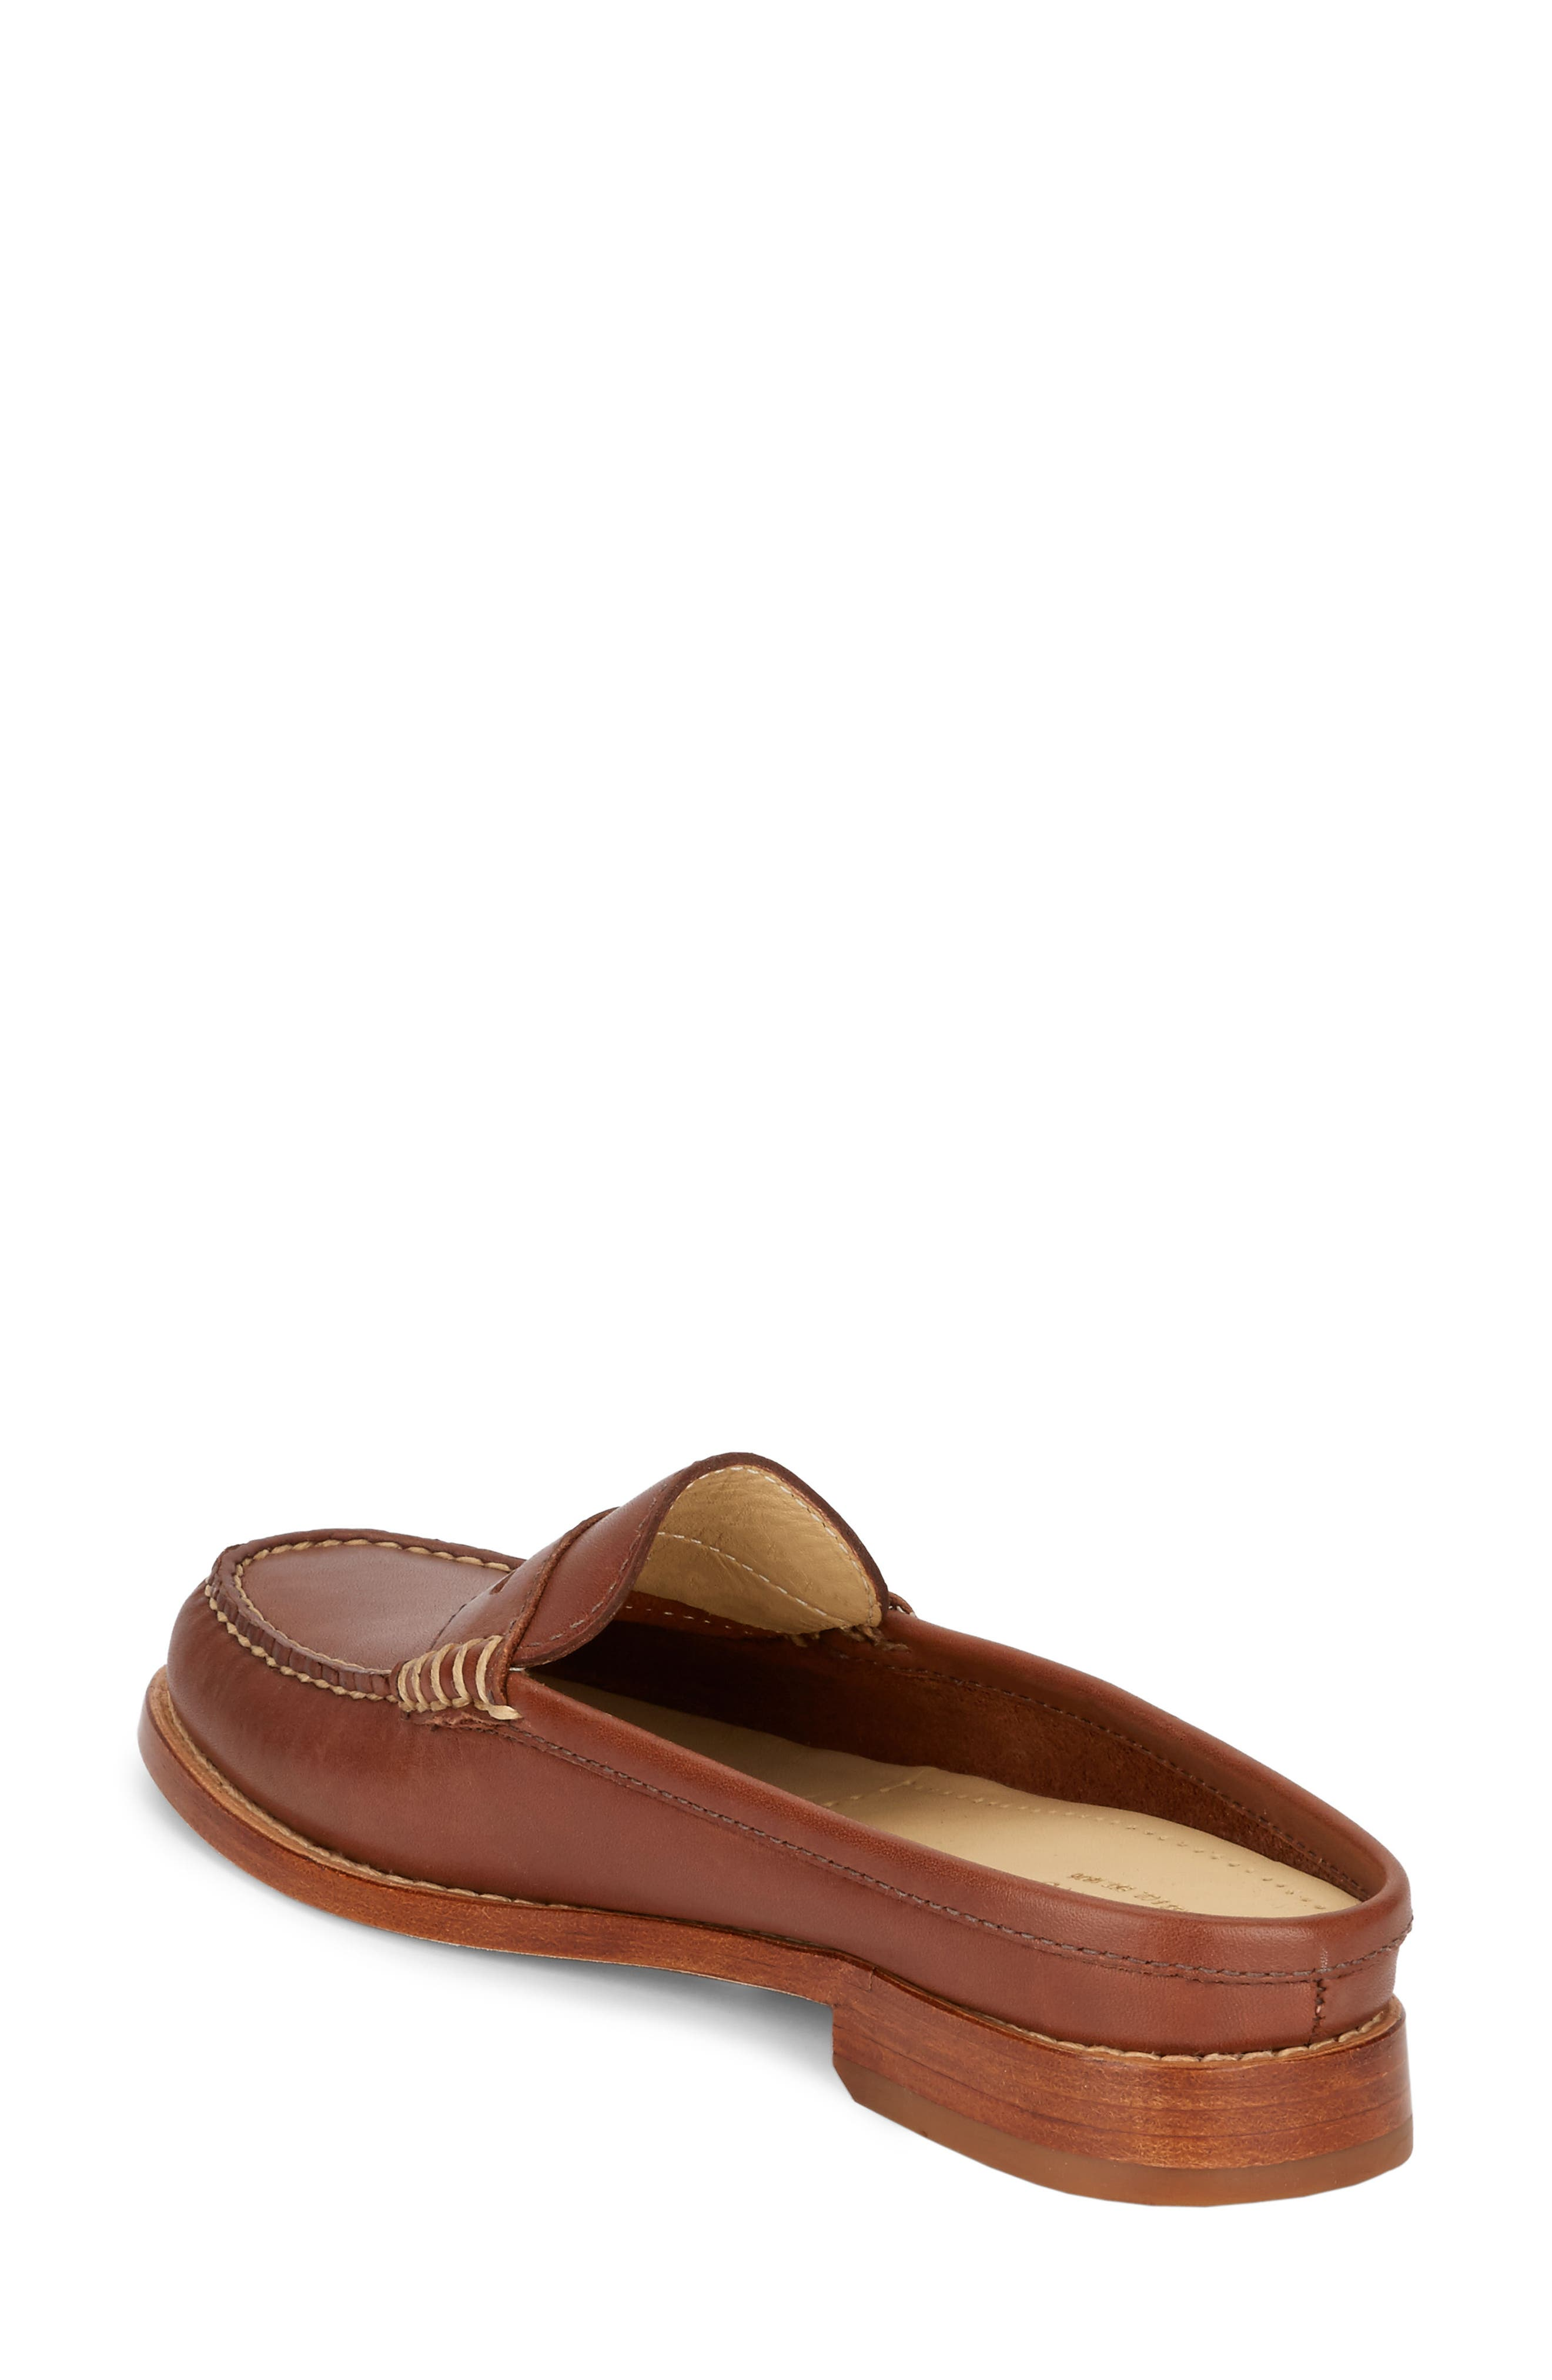 Wynn Loafer Mule,                             Alternate thumbnail 31, color,